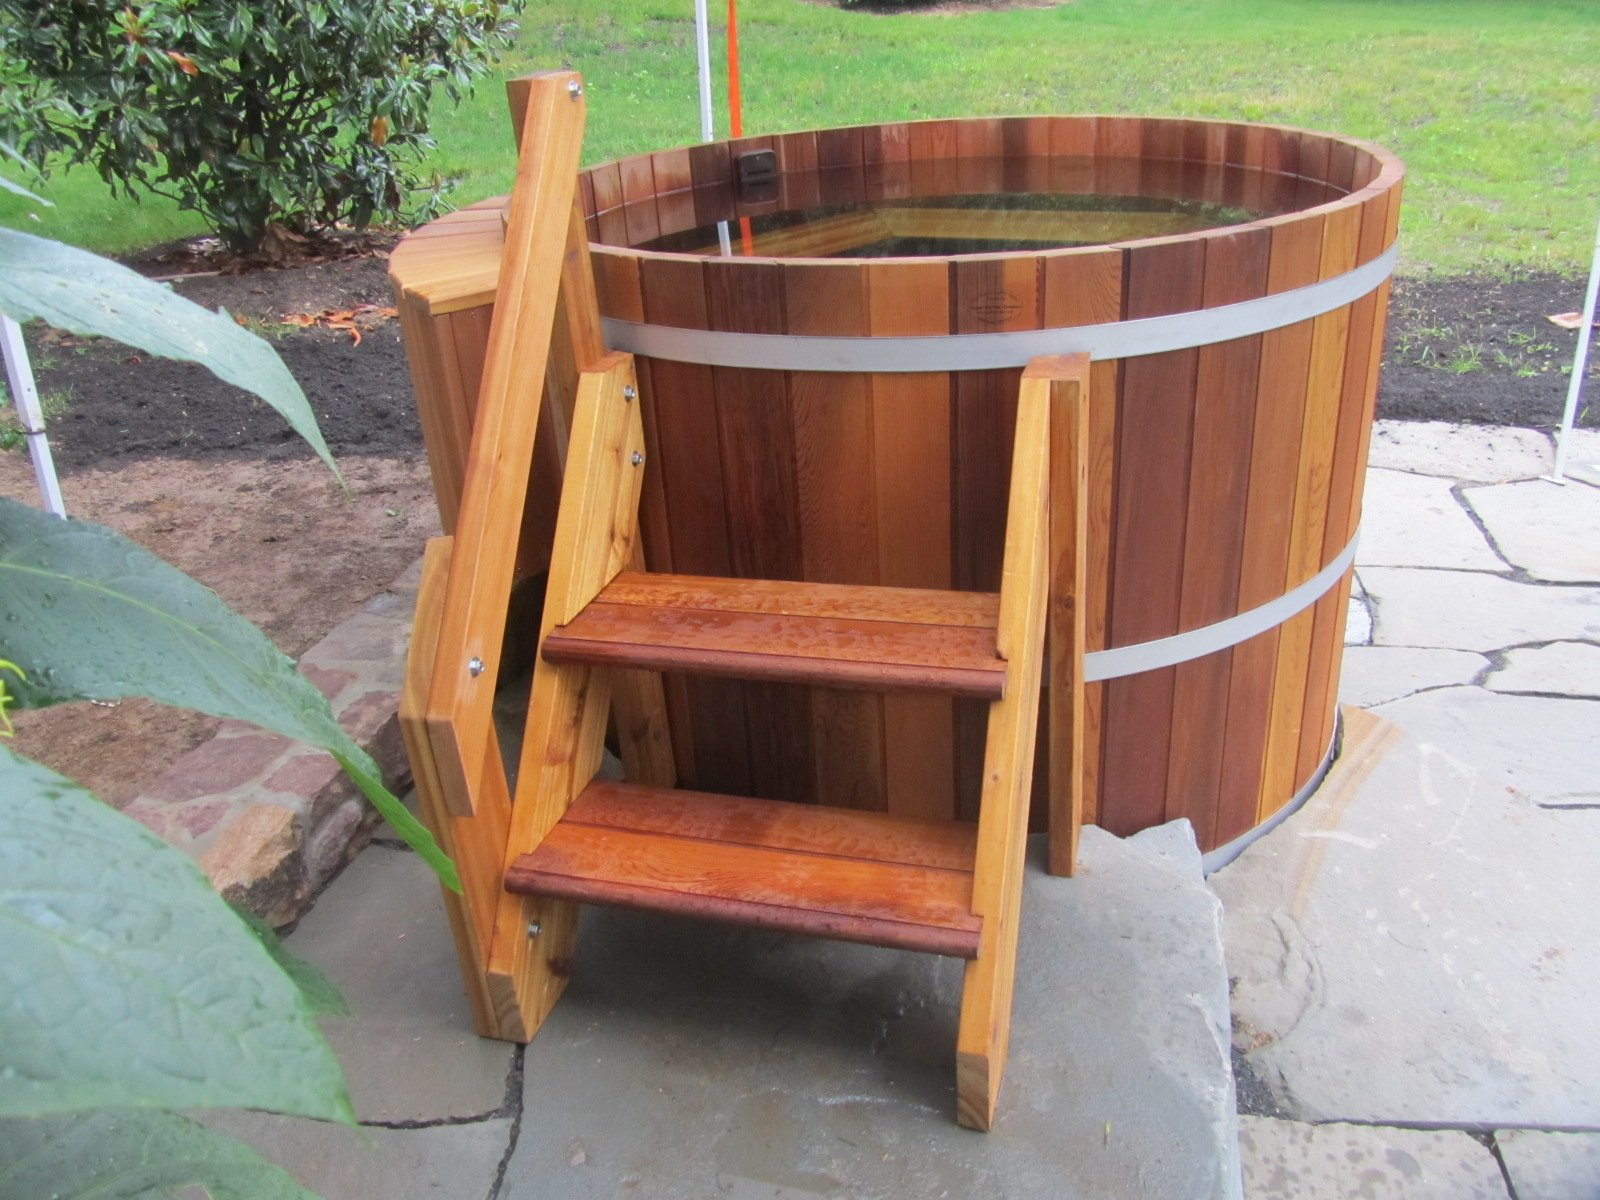 stand-alone-wooden-hot-tub_11057421385_o